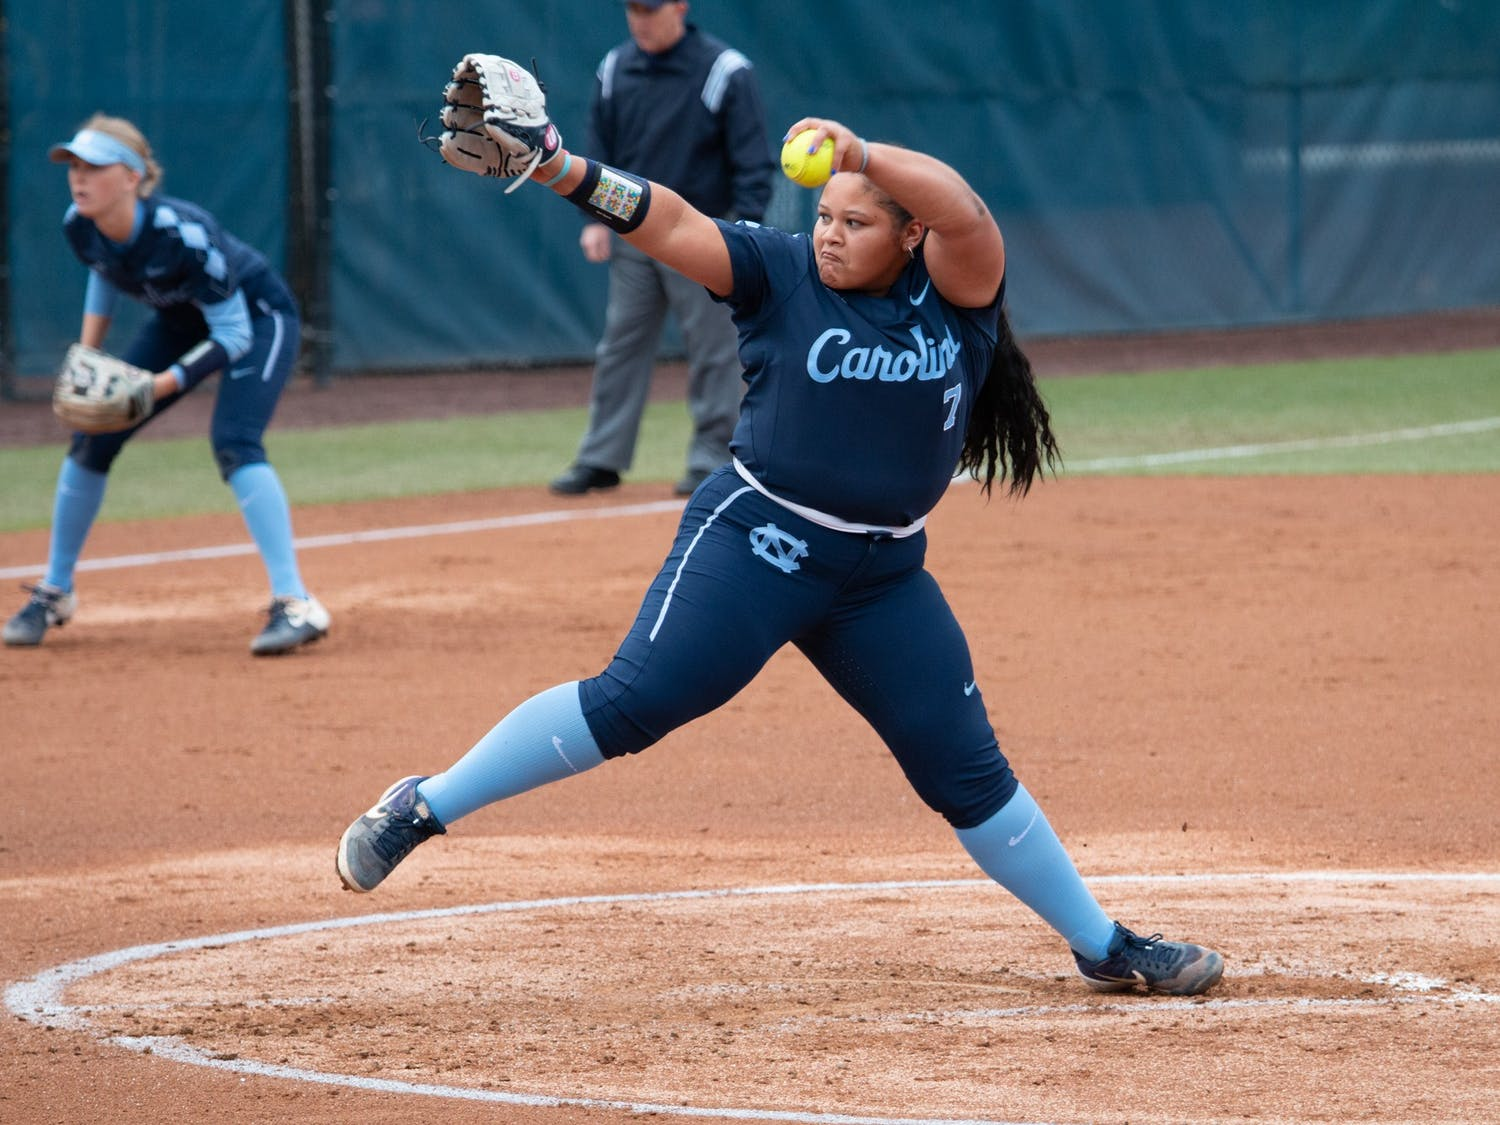 UNC first-year pitcher Alyssa Stanley (7) pitches the ball during the game against James Madison at G. Anderson Softball Stadium on Wednesday Feb. 19, 2020. UNC lost to Madison 3-6.